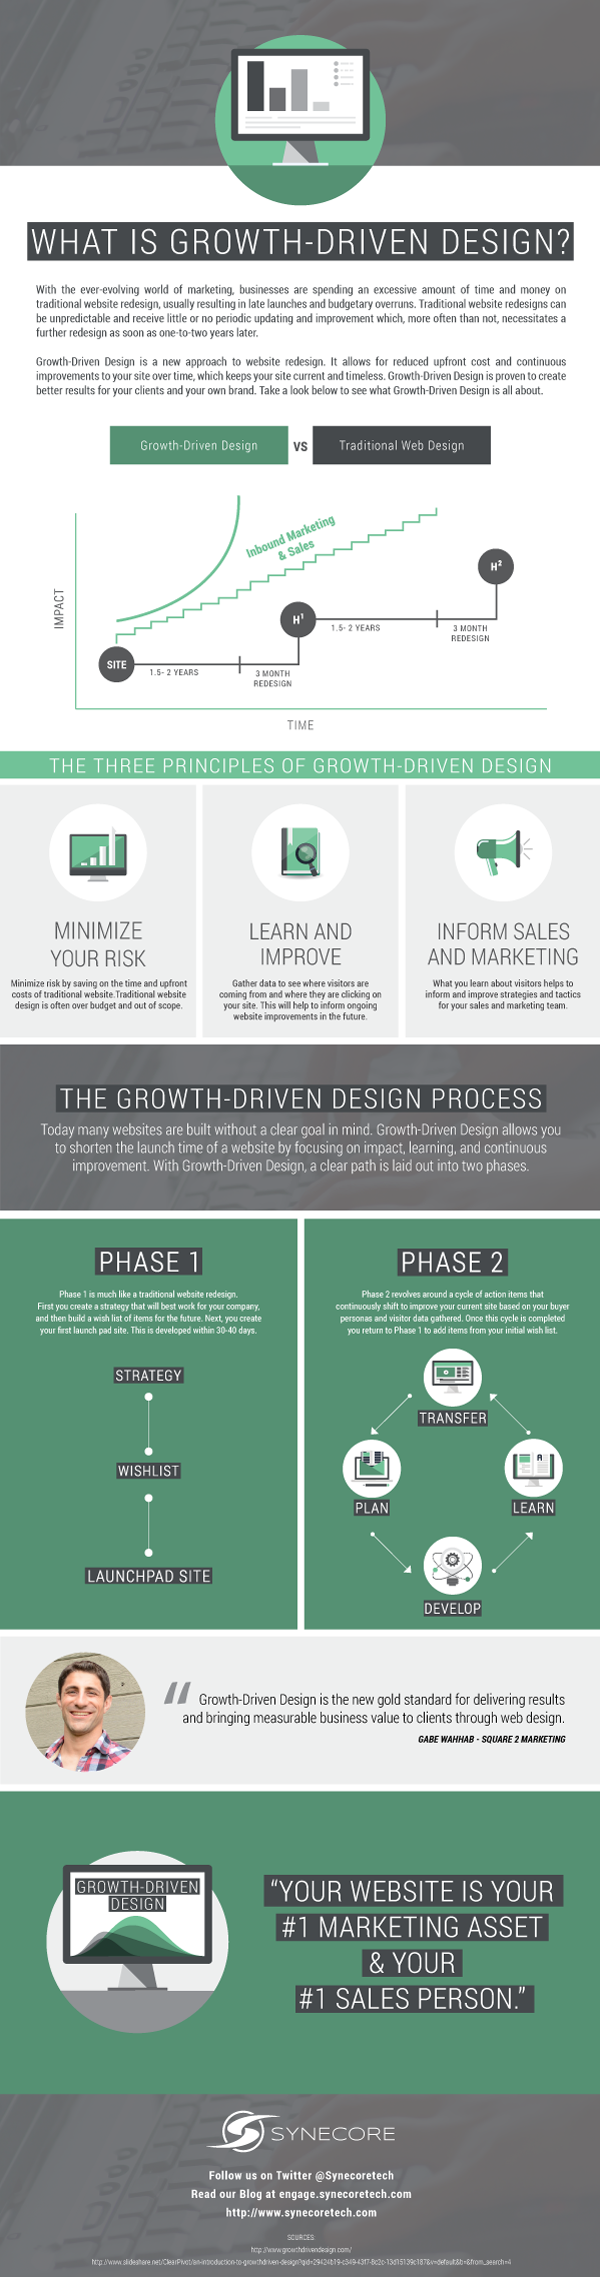 Growth Driven Design Infographic